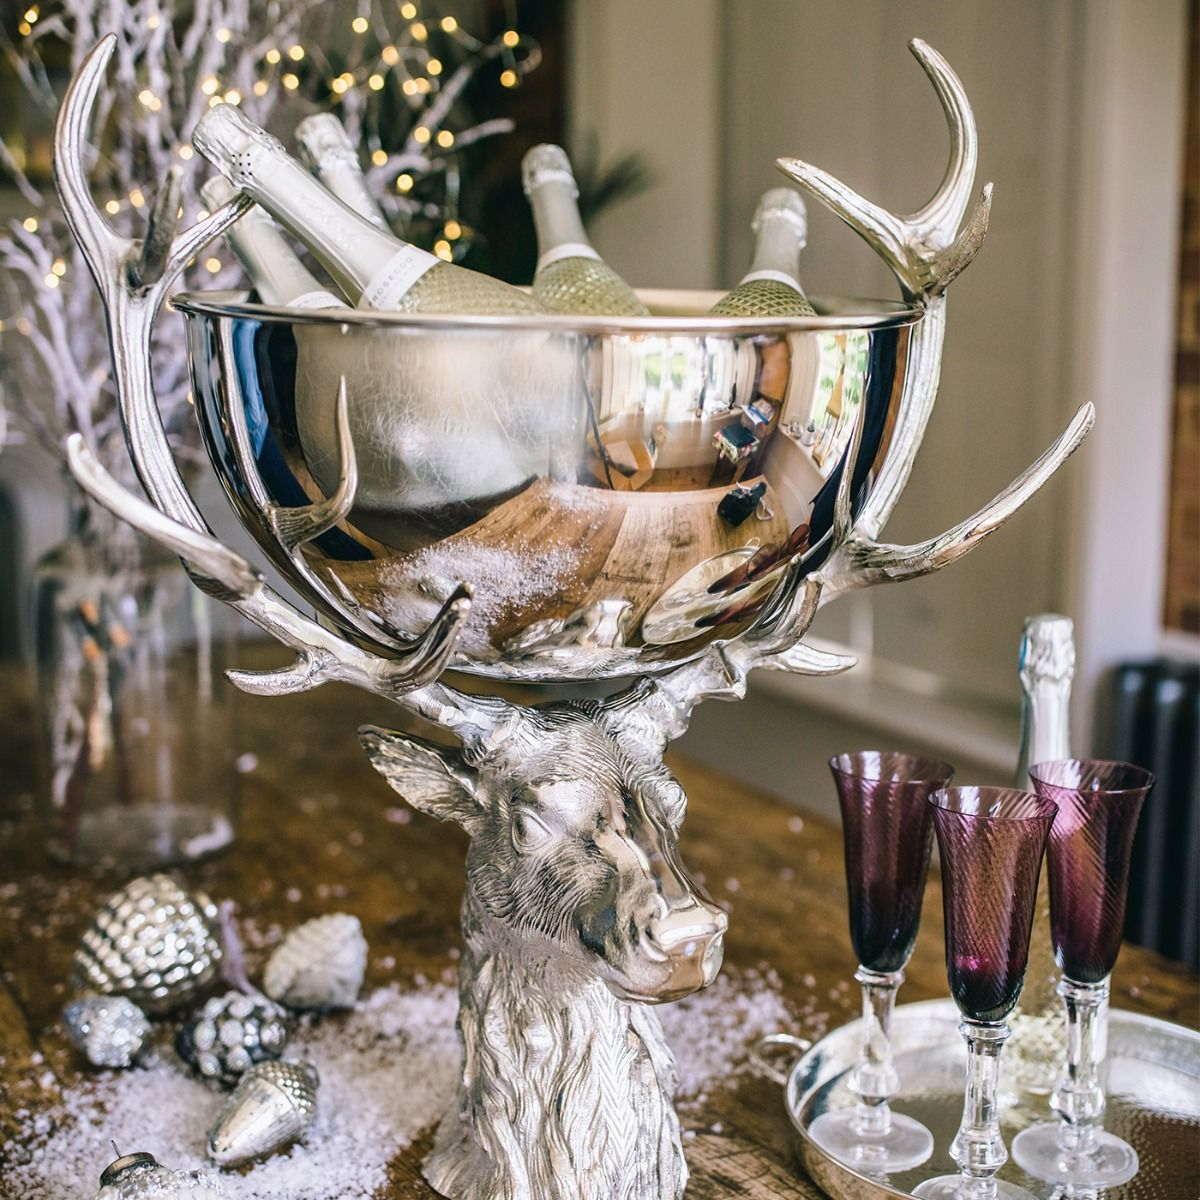 Barware for the Festive Season